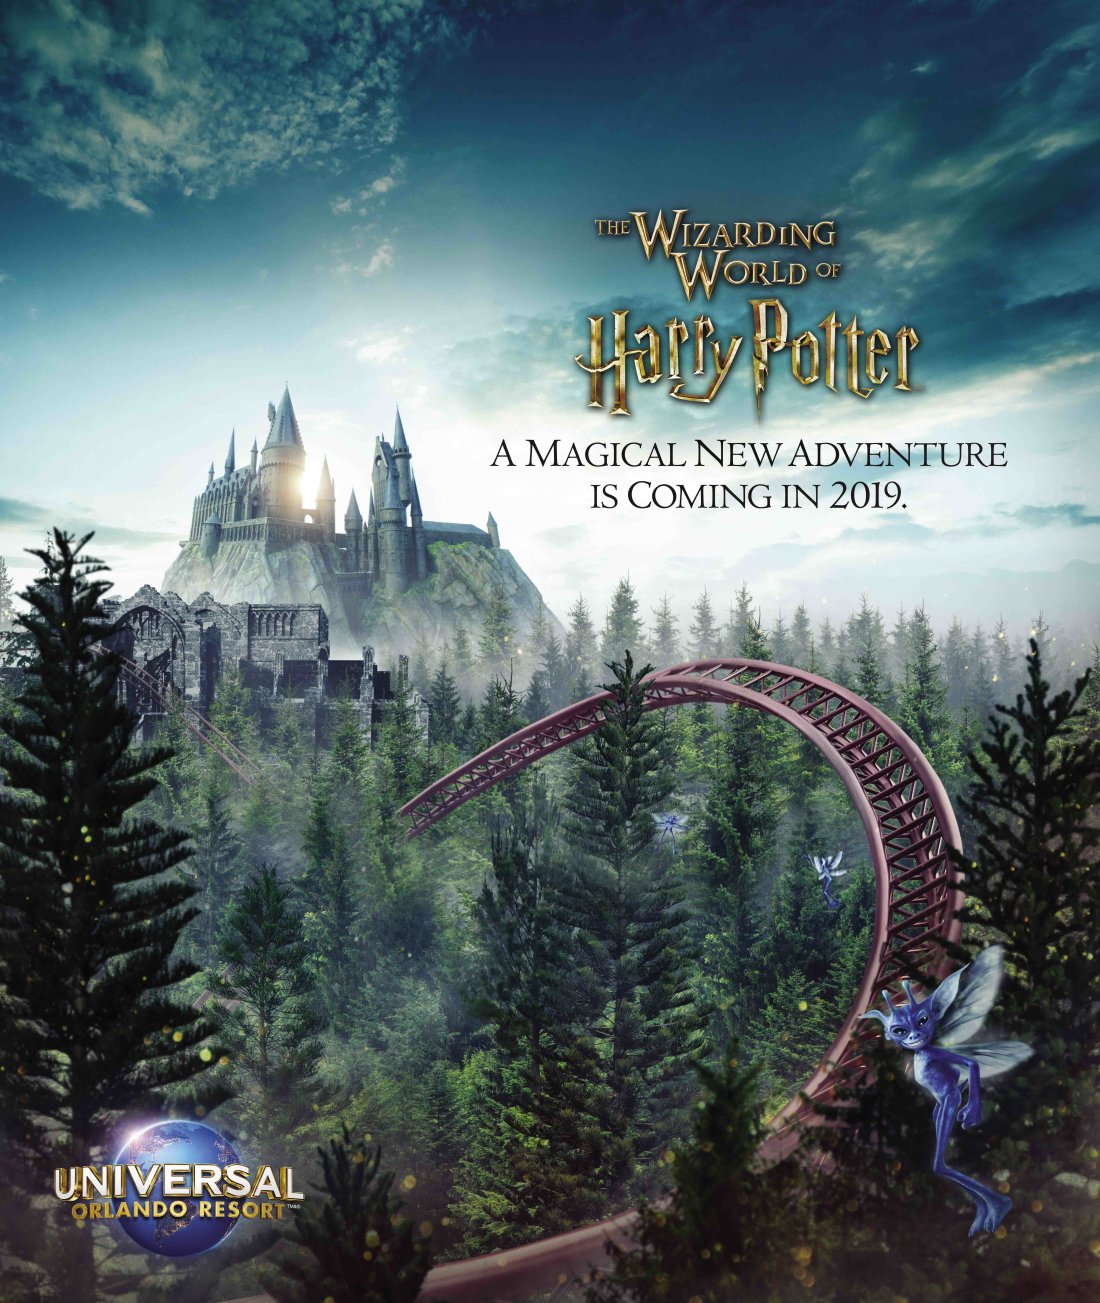 First Look at The Wizarding World of Hogsmeade New Rollercoaster